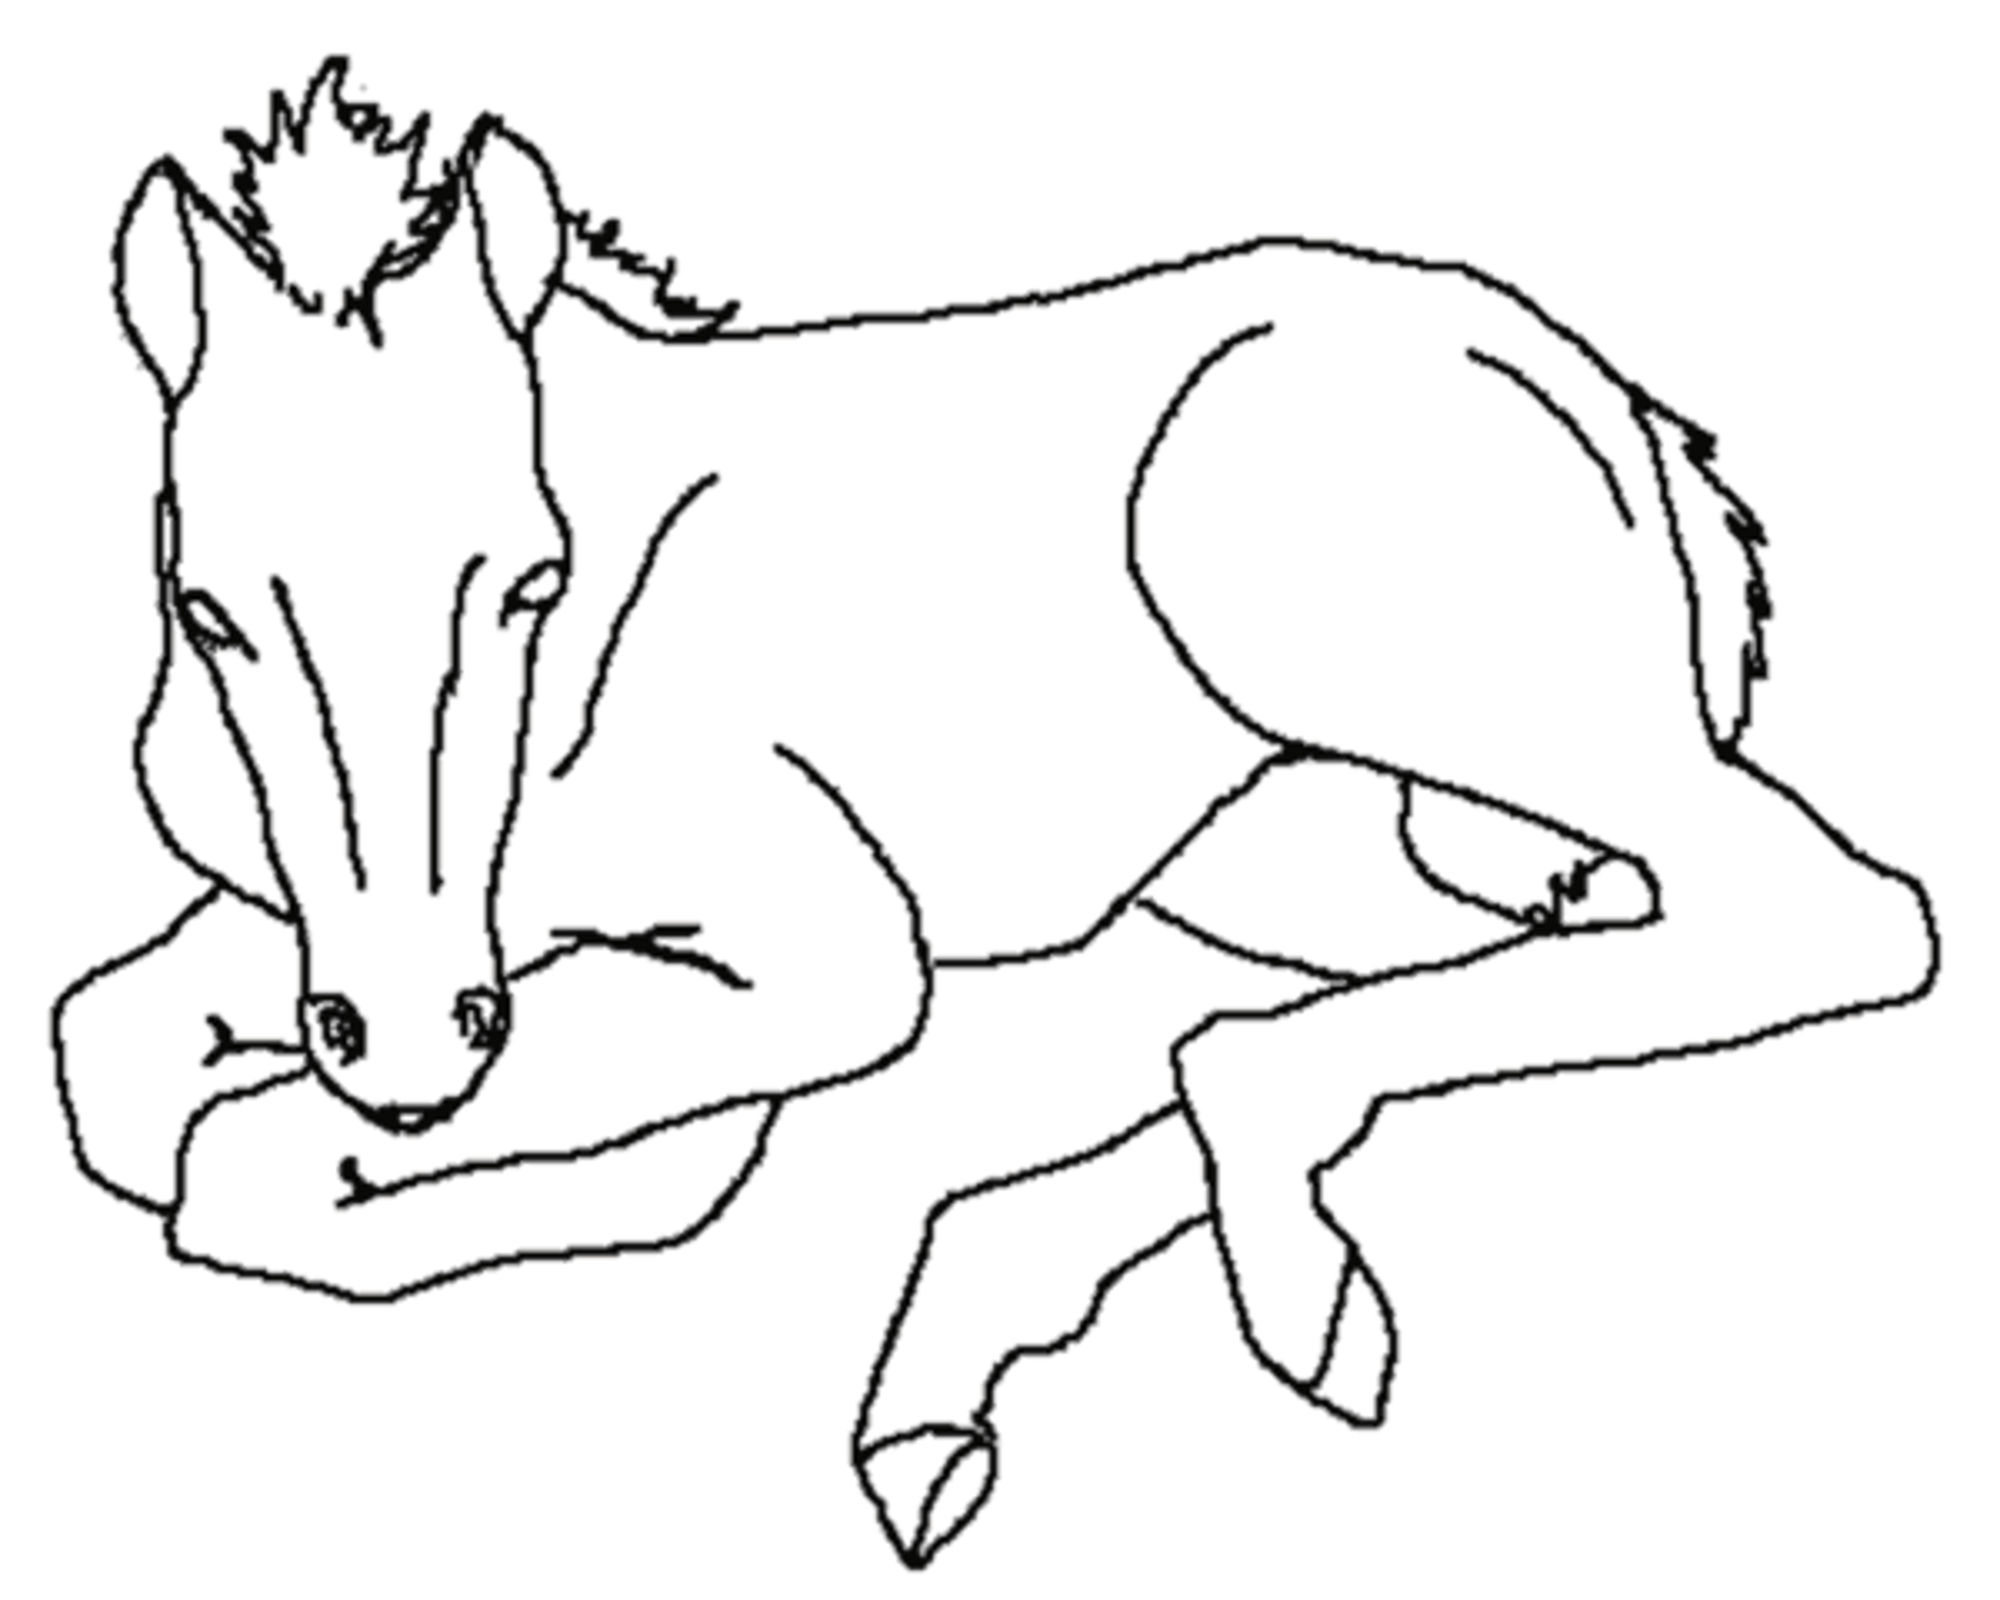 horse coloring fun horse coloring pages for your kids printable coloring horse 1 3